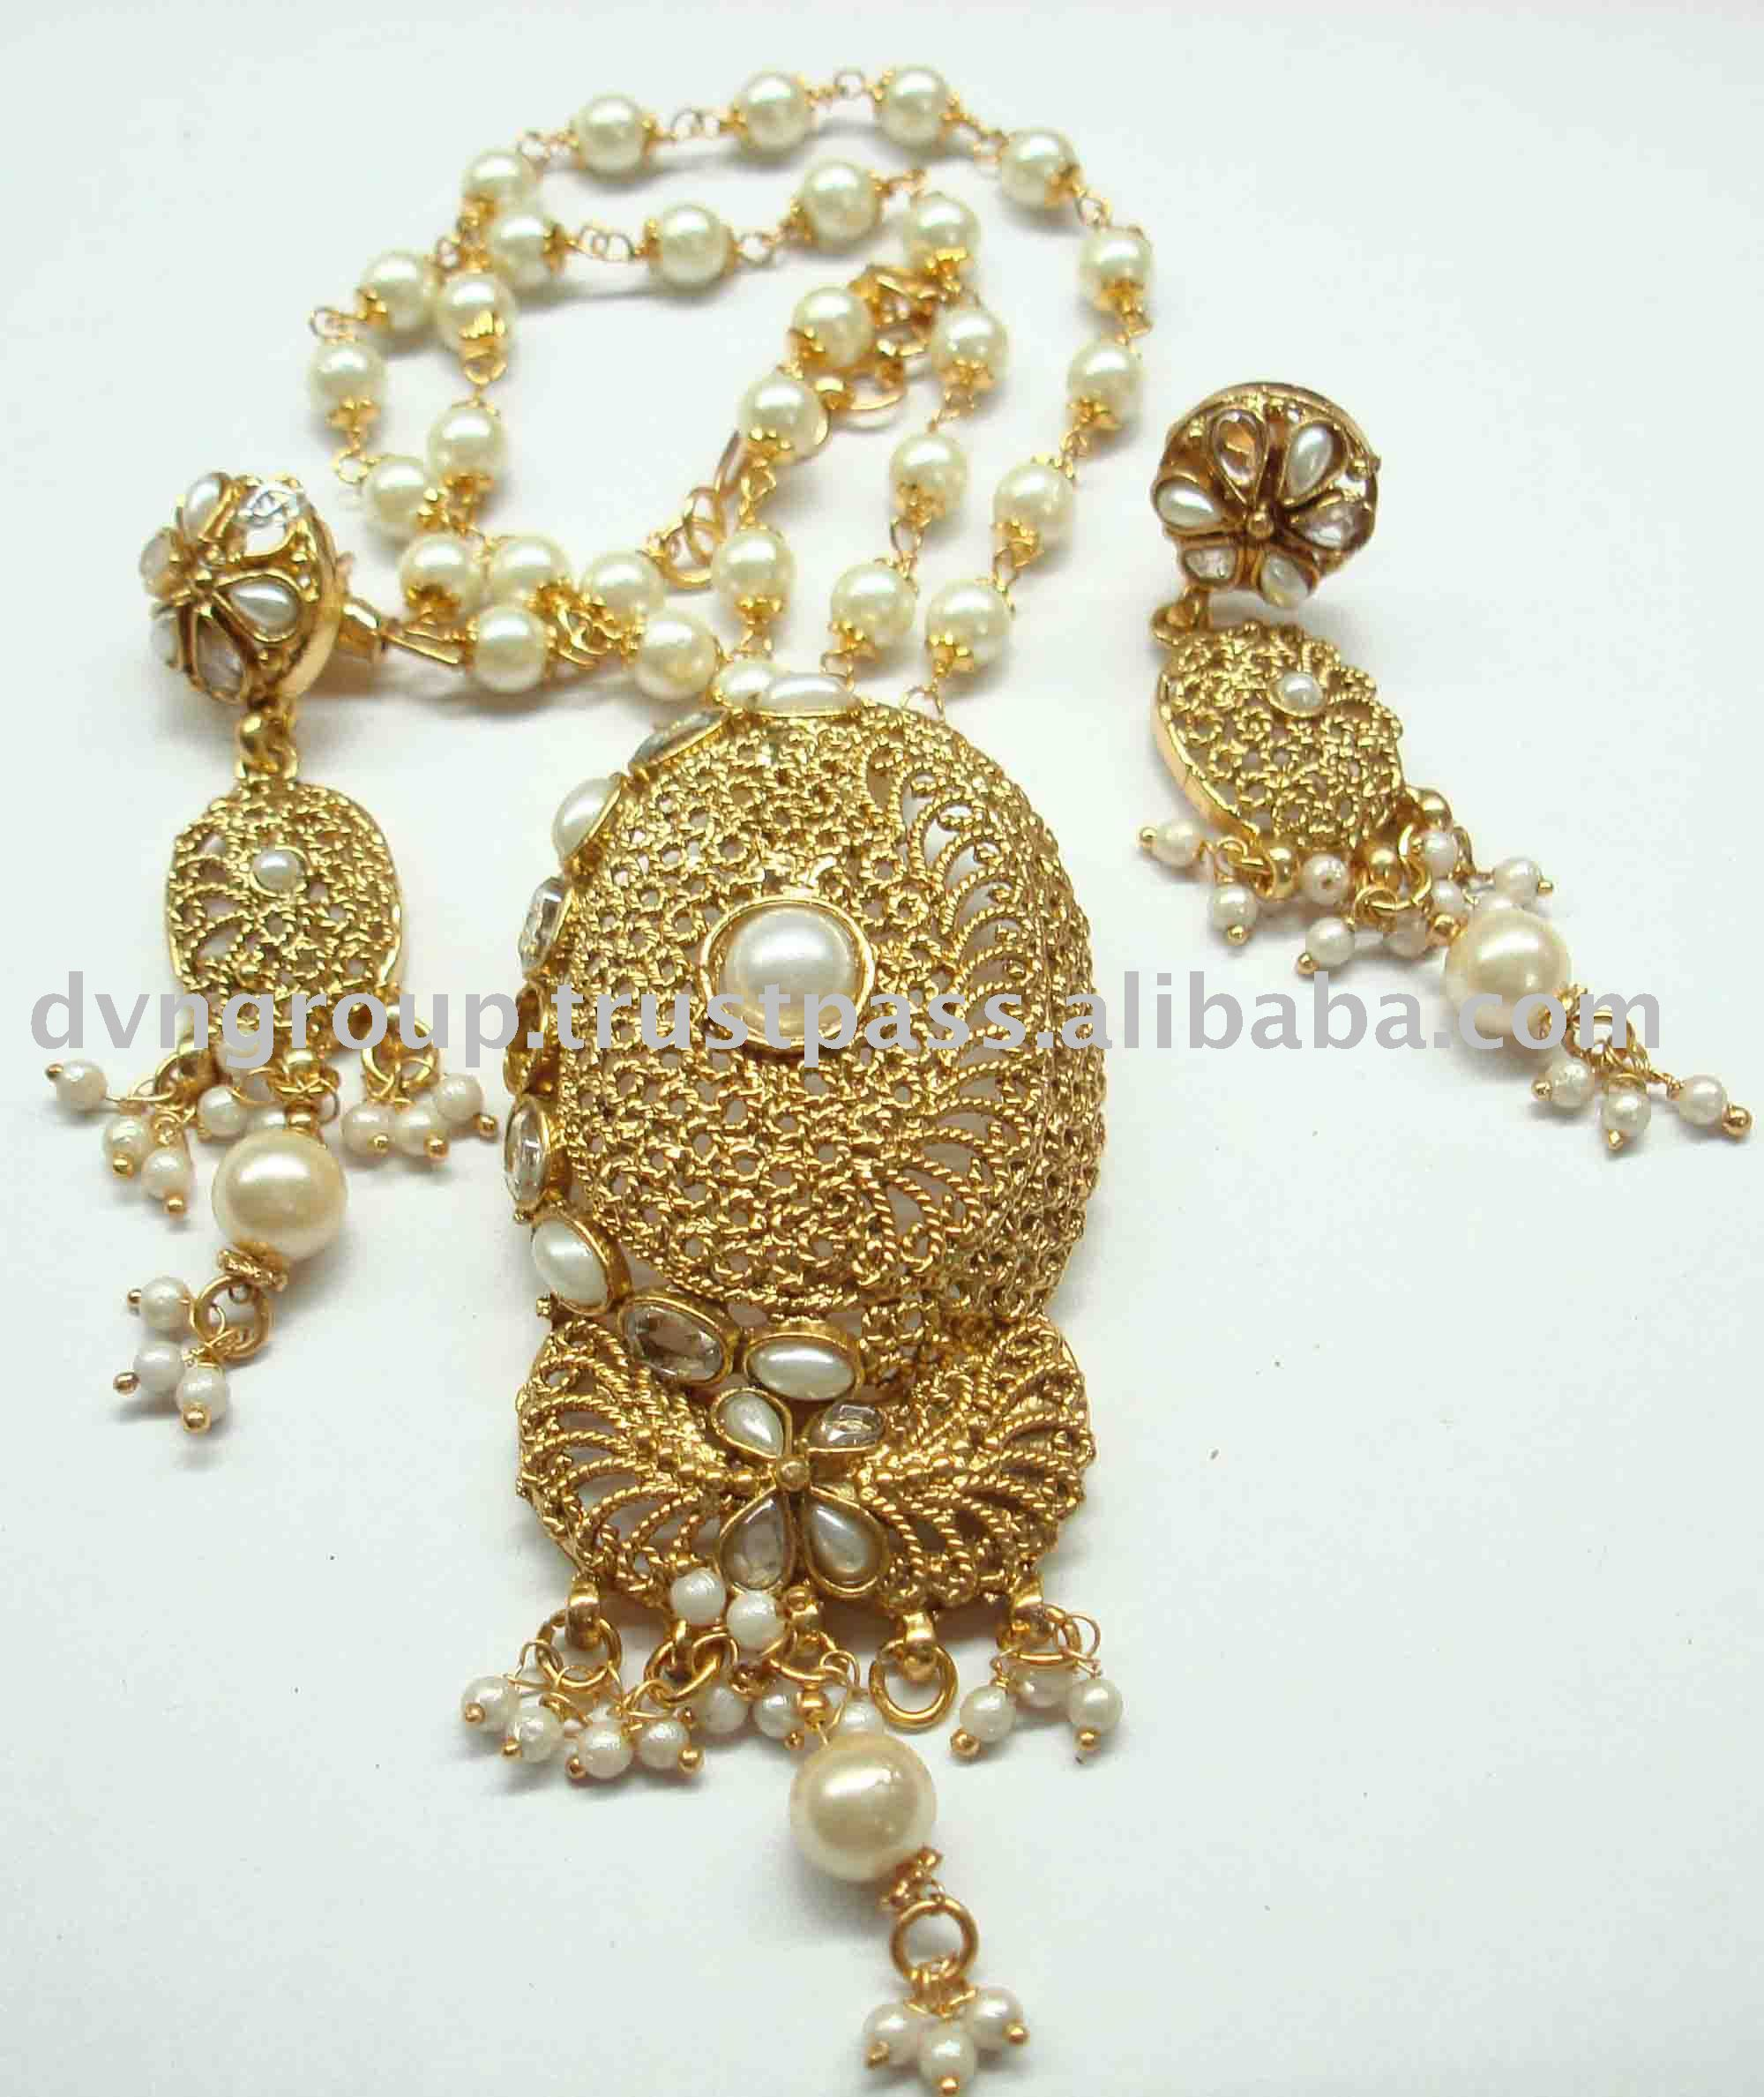 gold on online jewelry pinterest shopping for upasana women as jewellery imitation indian artificial tradition pin negi fashion by